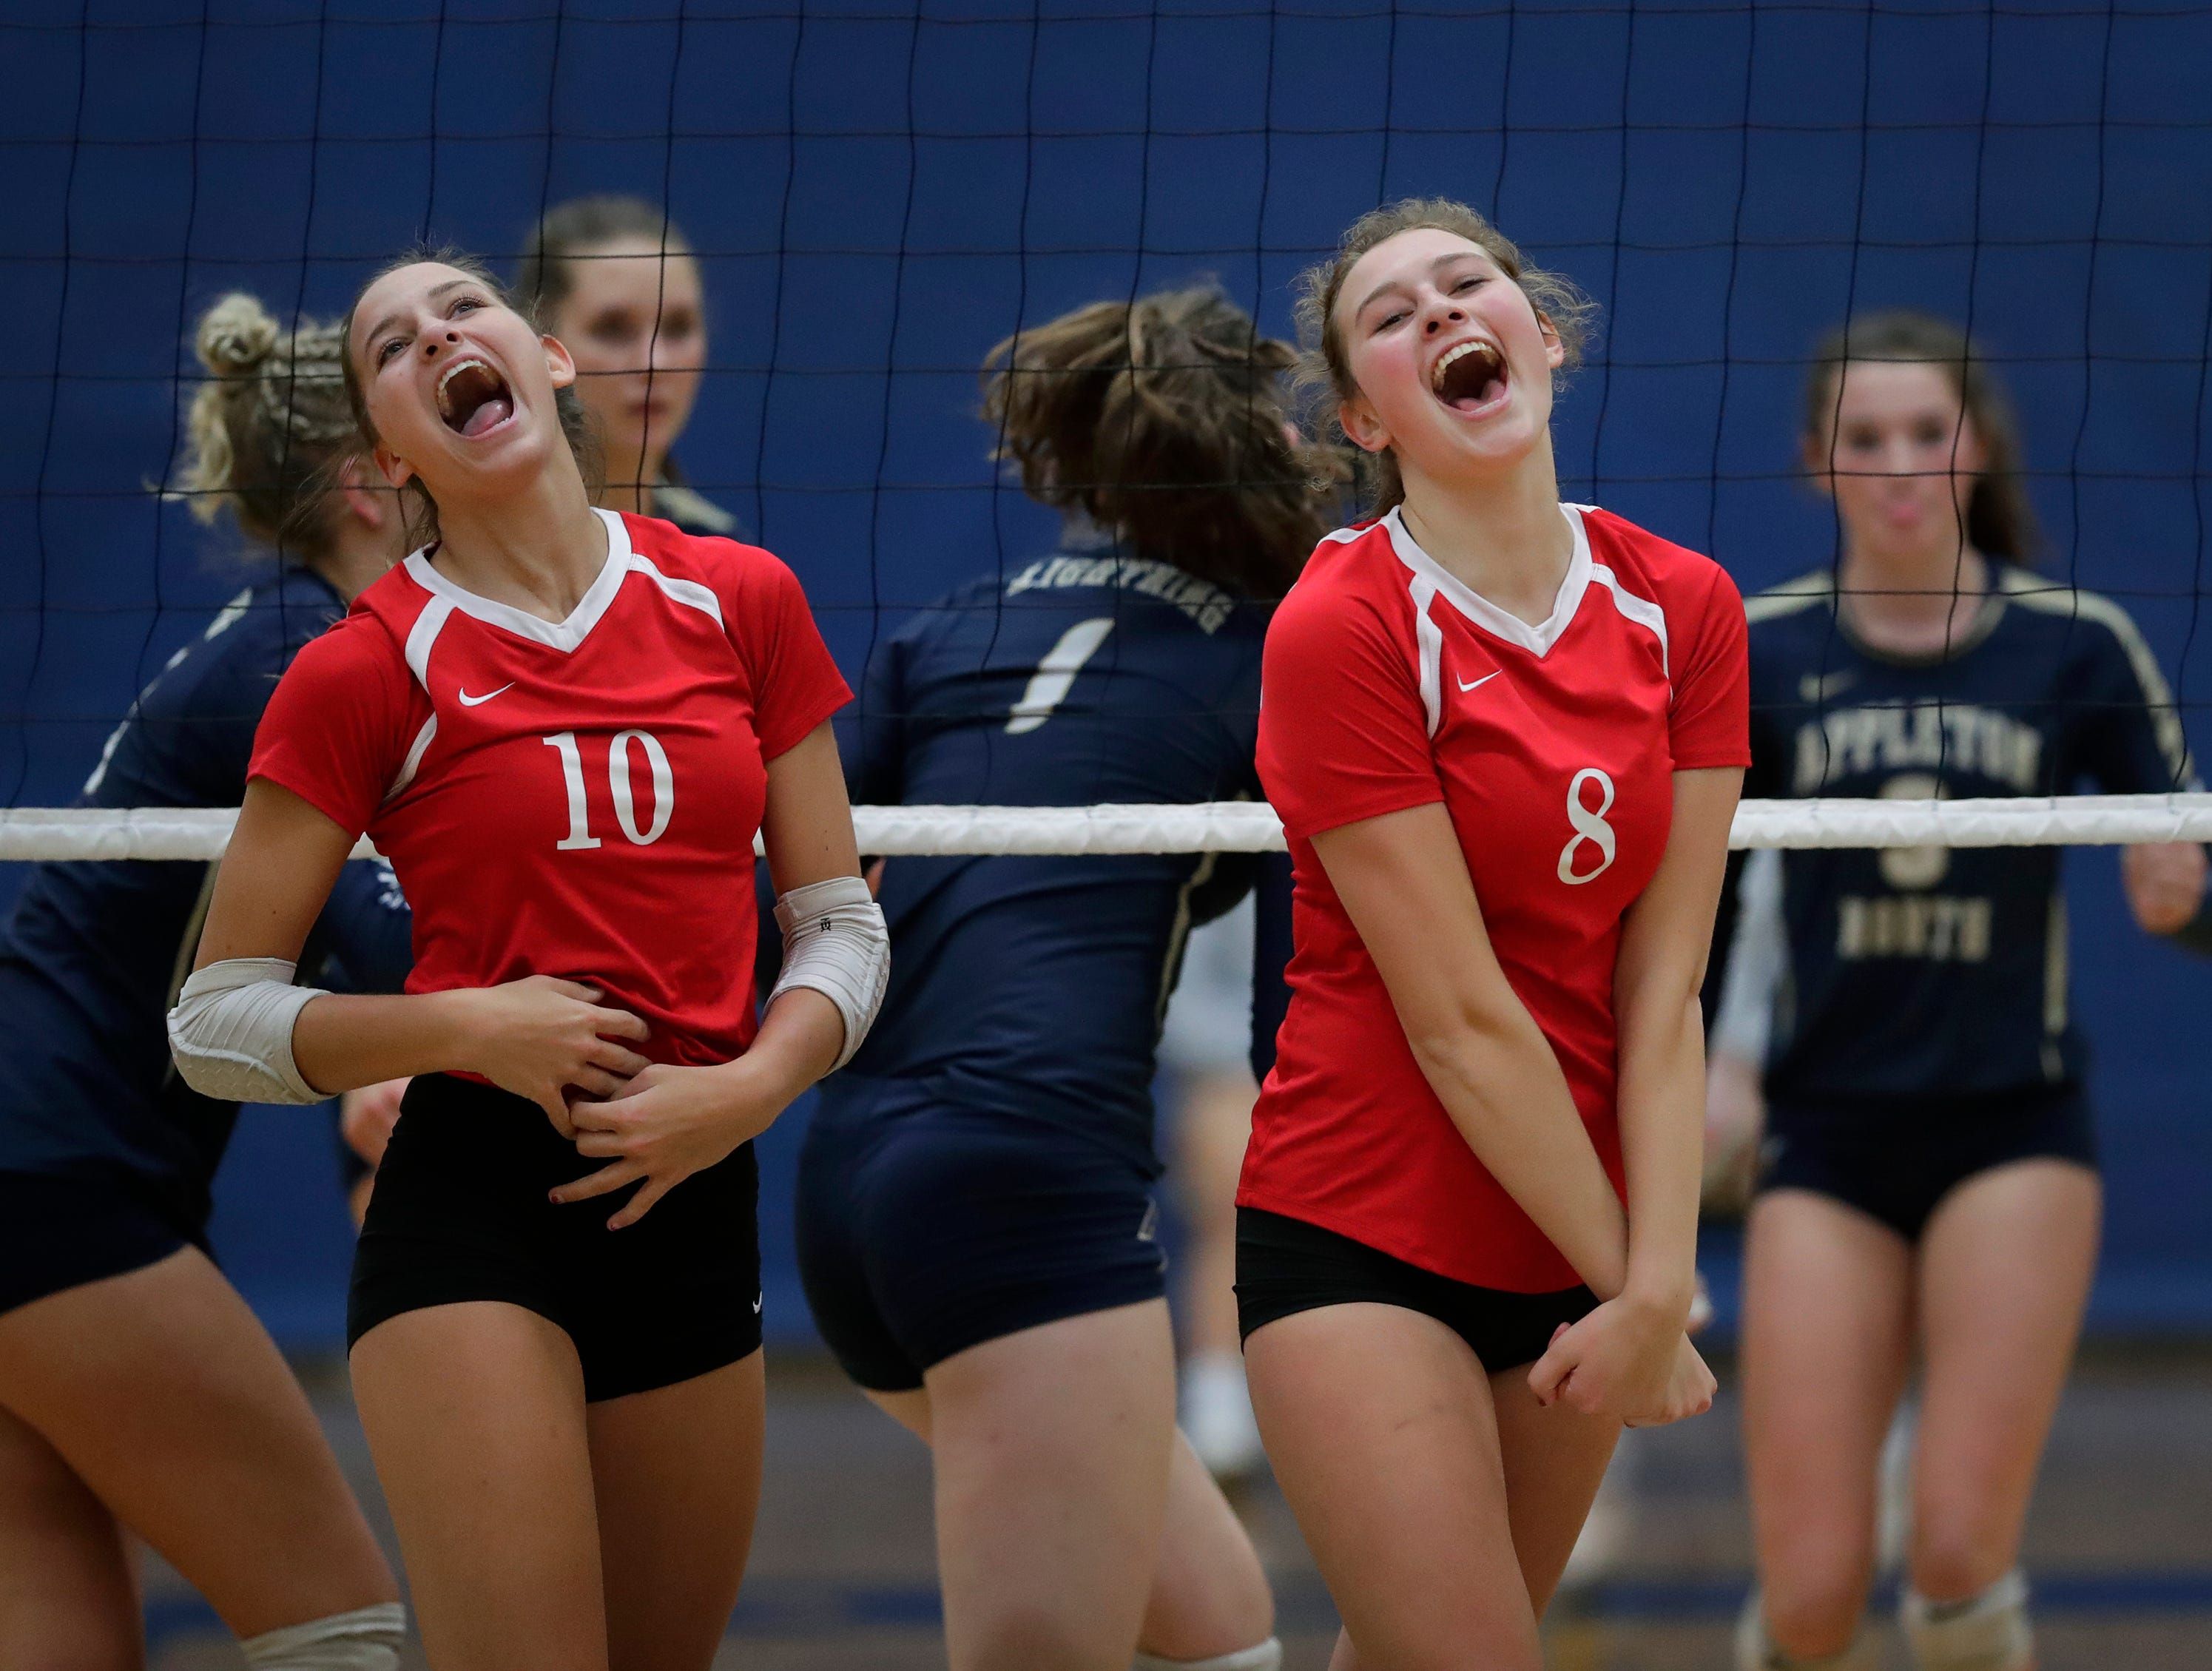 Kimberly High School's Courtney Pearson (10) and Carlee Doering (8) celebrate winning a point against Appleton North High School during their girls volleyball match Thursday, Sept. 27, 2018, in Appleton, Wis. Dan Powers/USA TODAY NETWORK-Wisconsin